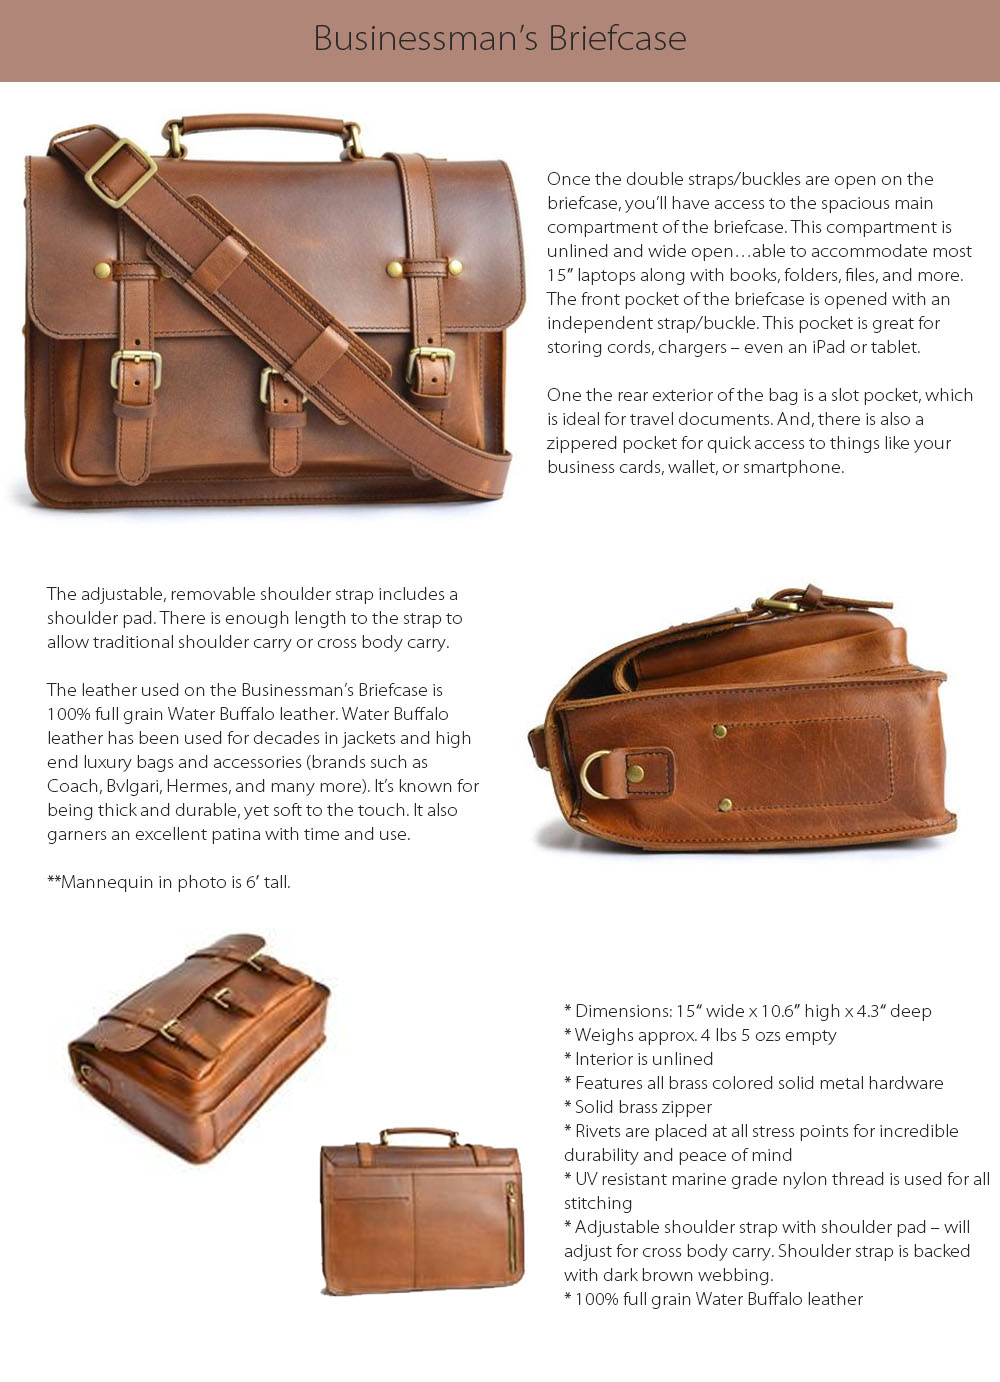 Businessman's Briefcase Water Buffalo Leather